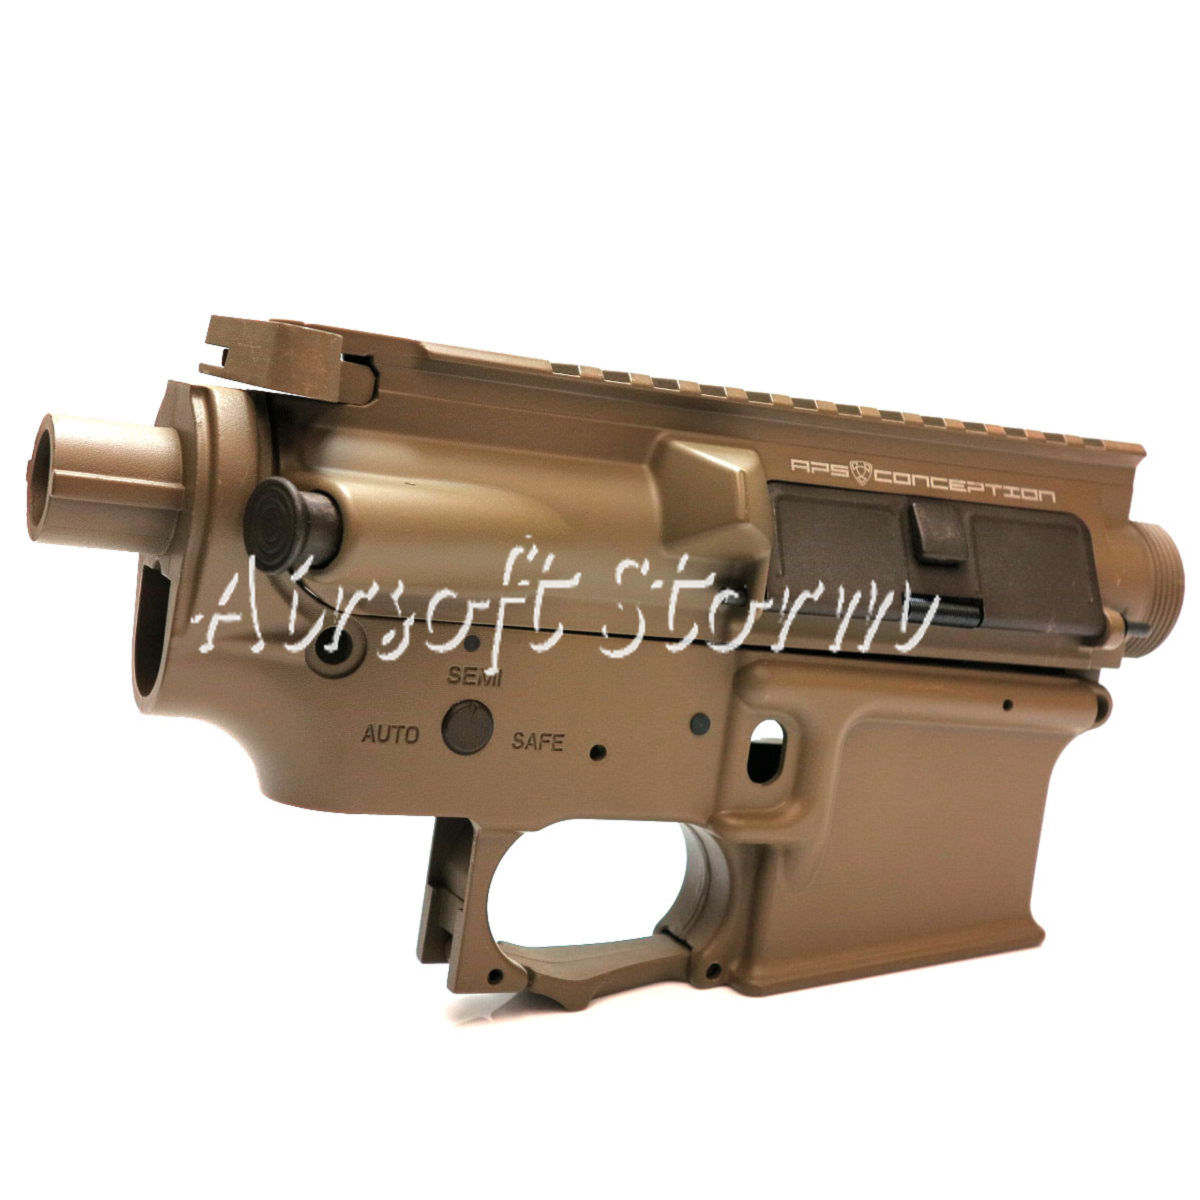 m16 upper receiver assembly diagram ultrasonic movement detector circuit model no aer008d aps logo and lower metal body